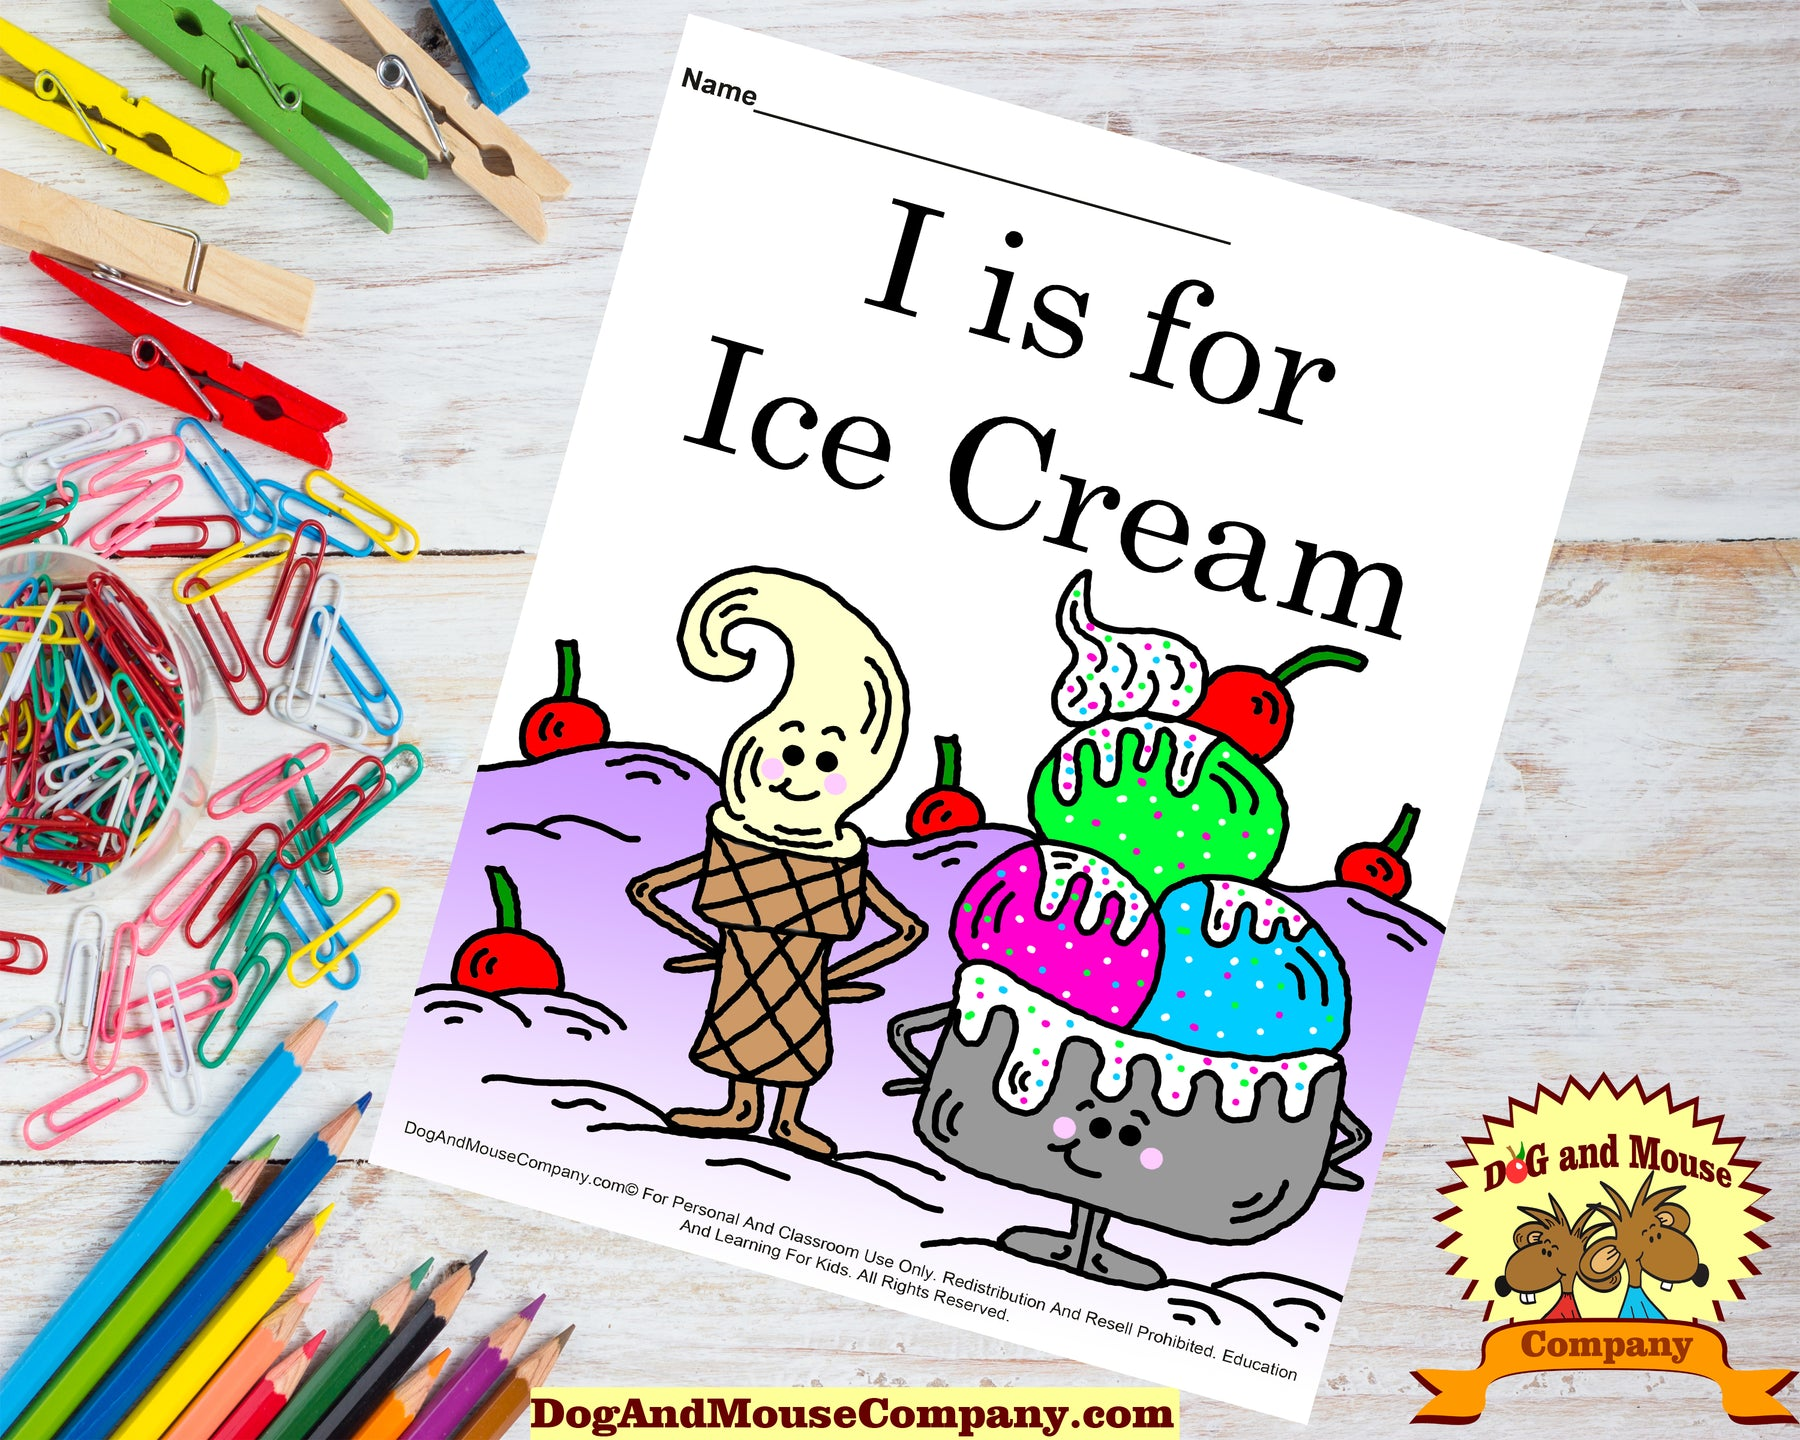 I Is For Ice Cream Colored Template | Learn Your ABC's Worksheet | Printable Digital Download by Dog And Mouse Company